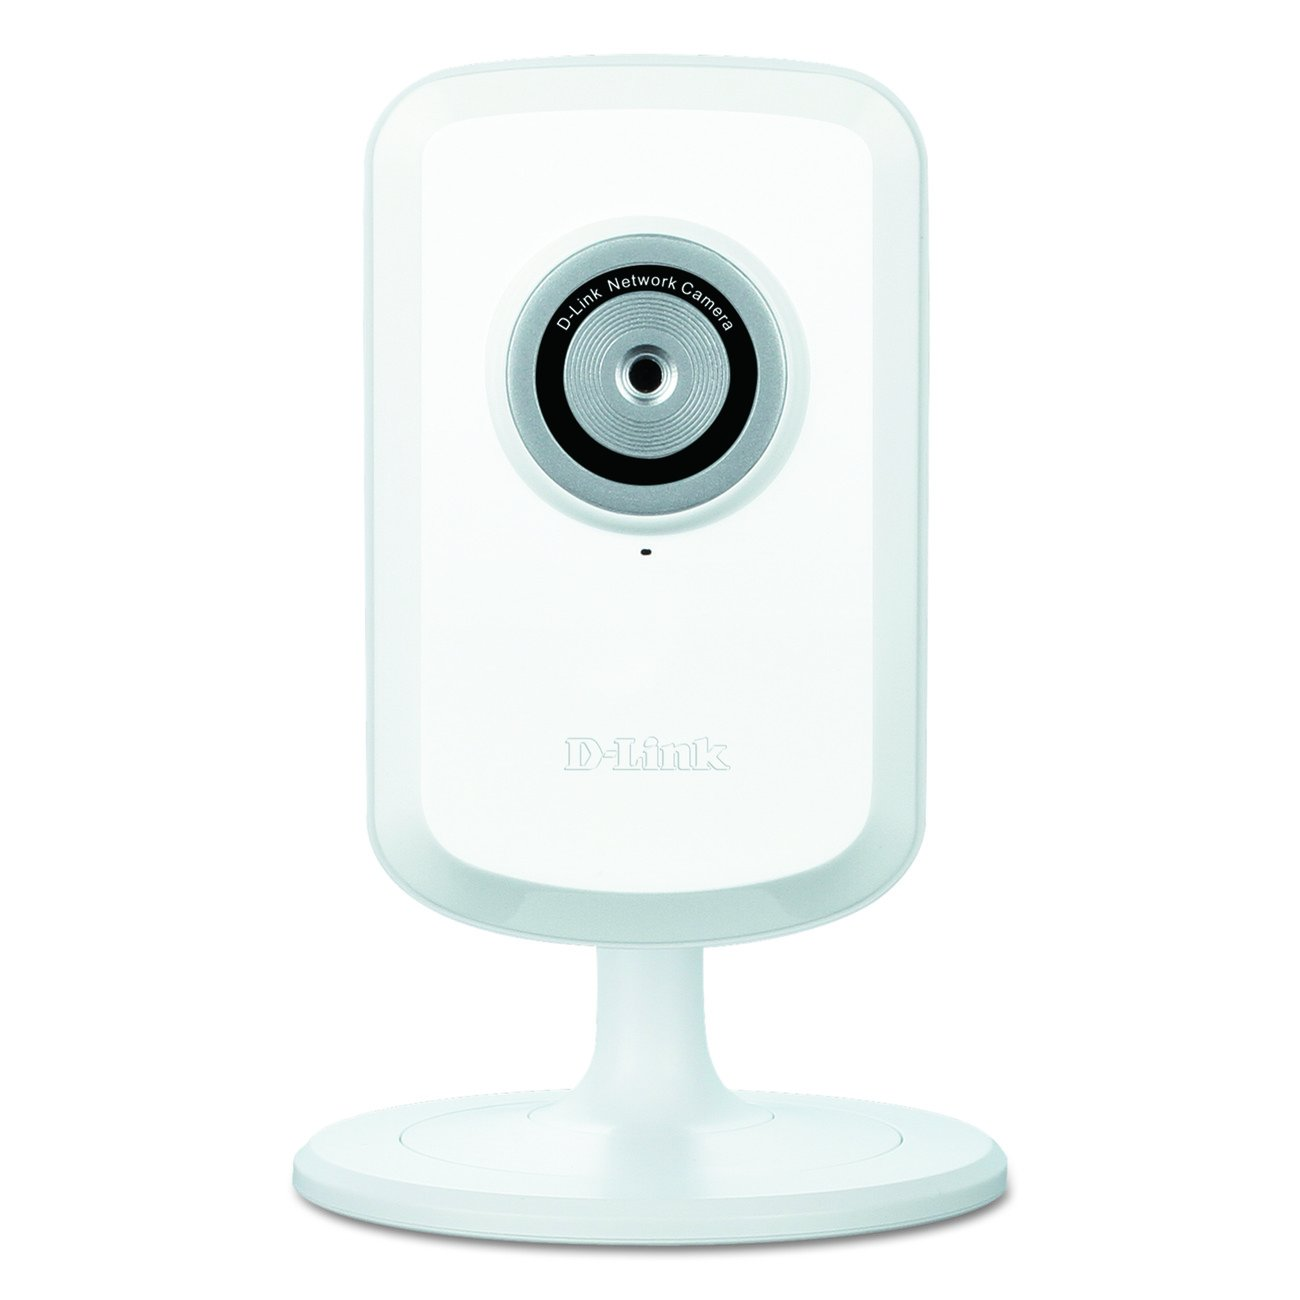 D-Link Wi-Fi Camera with Remote Viewing (DCS-930L) by D-Link